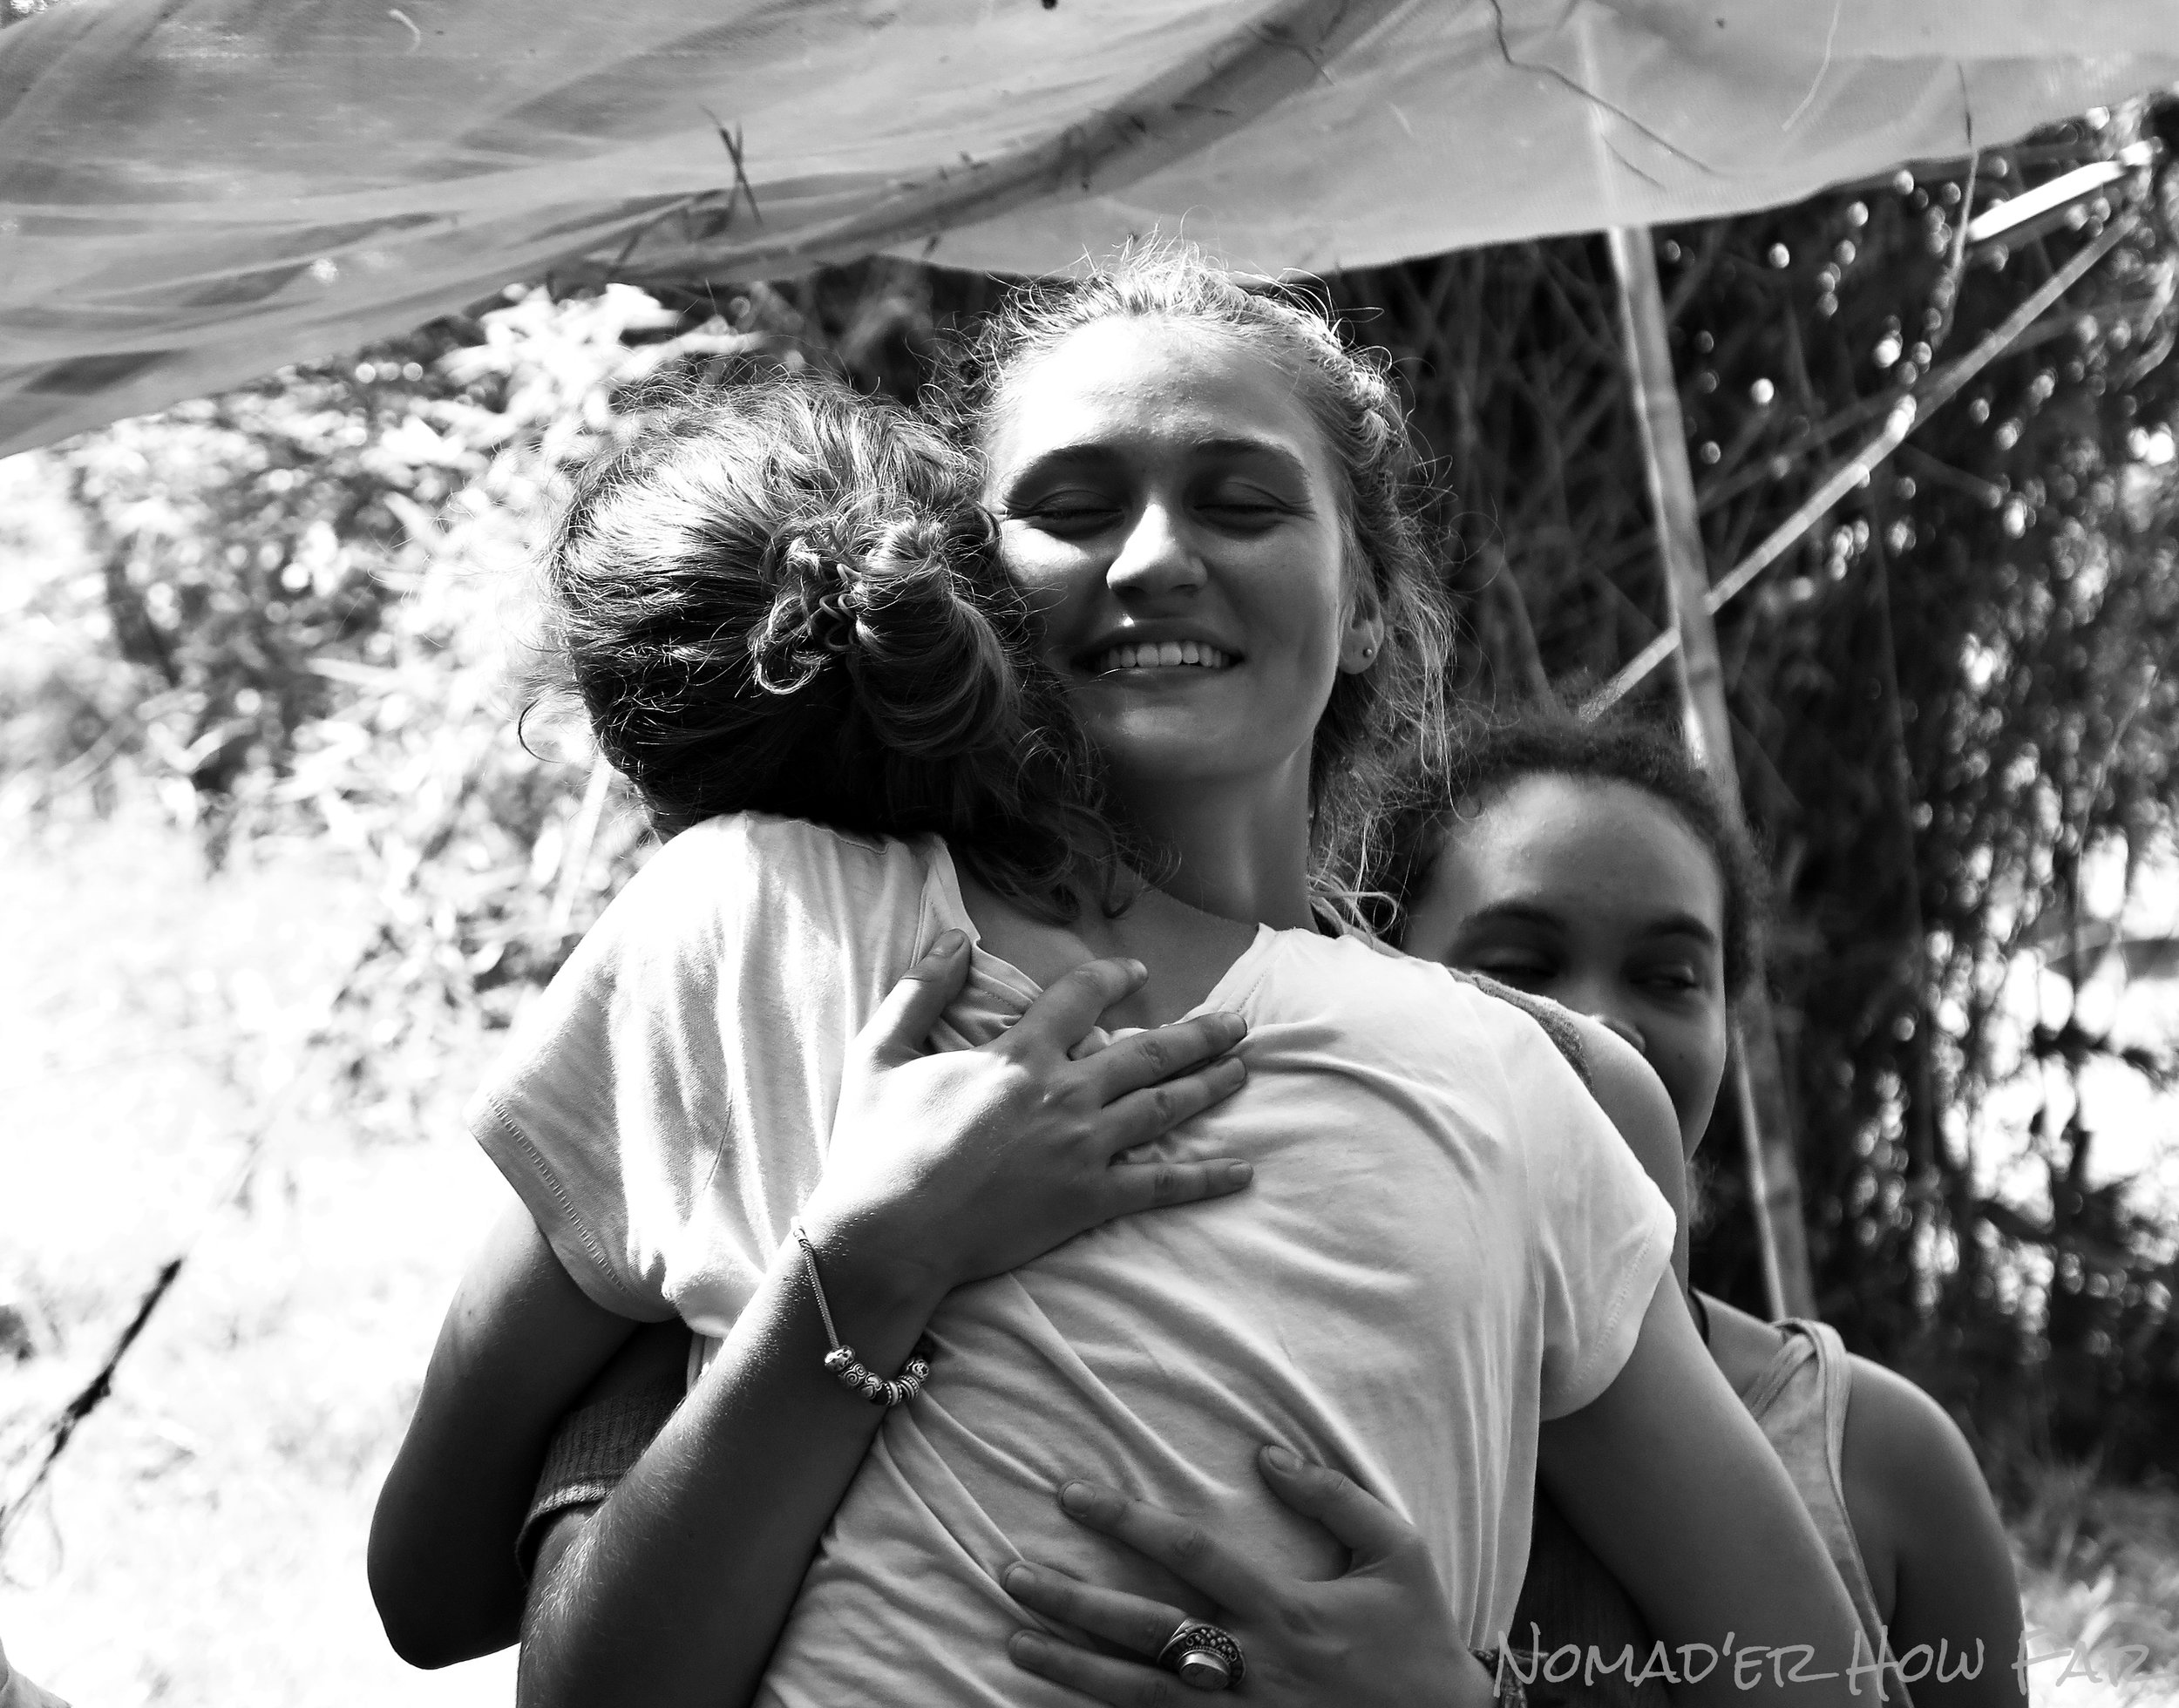 Hugs - The Mindfulness Project, Thailand